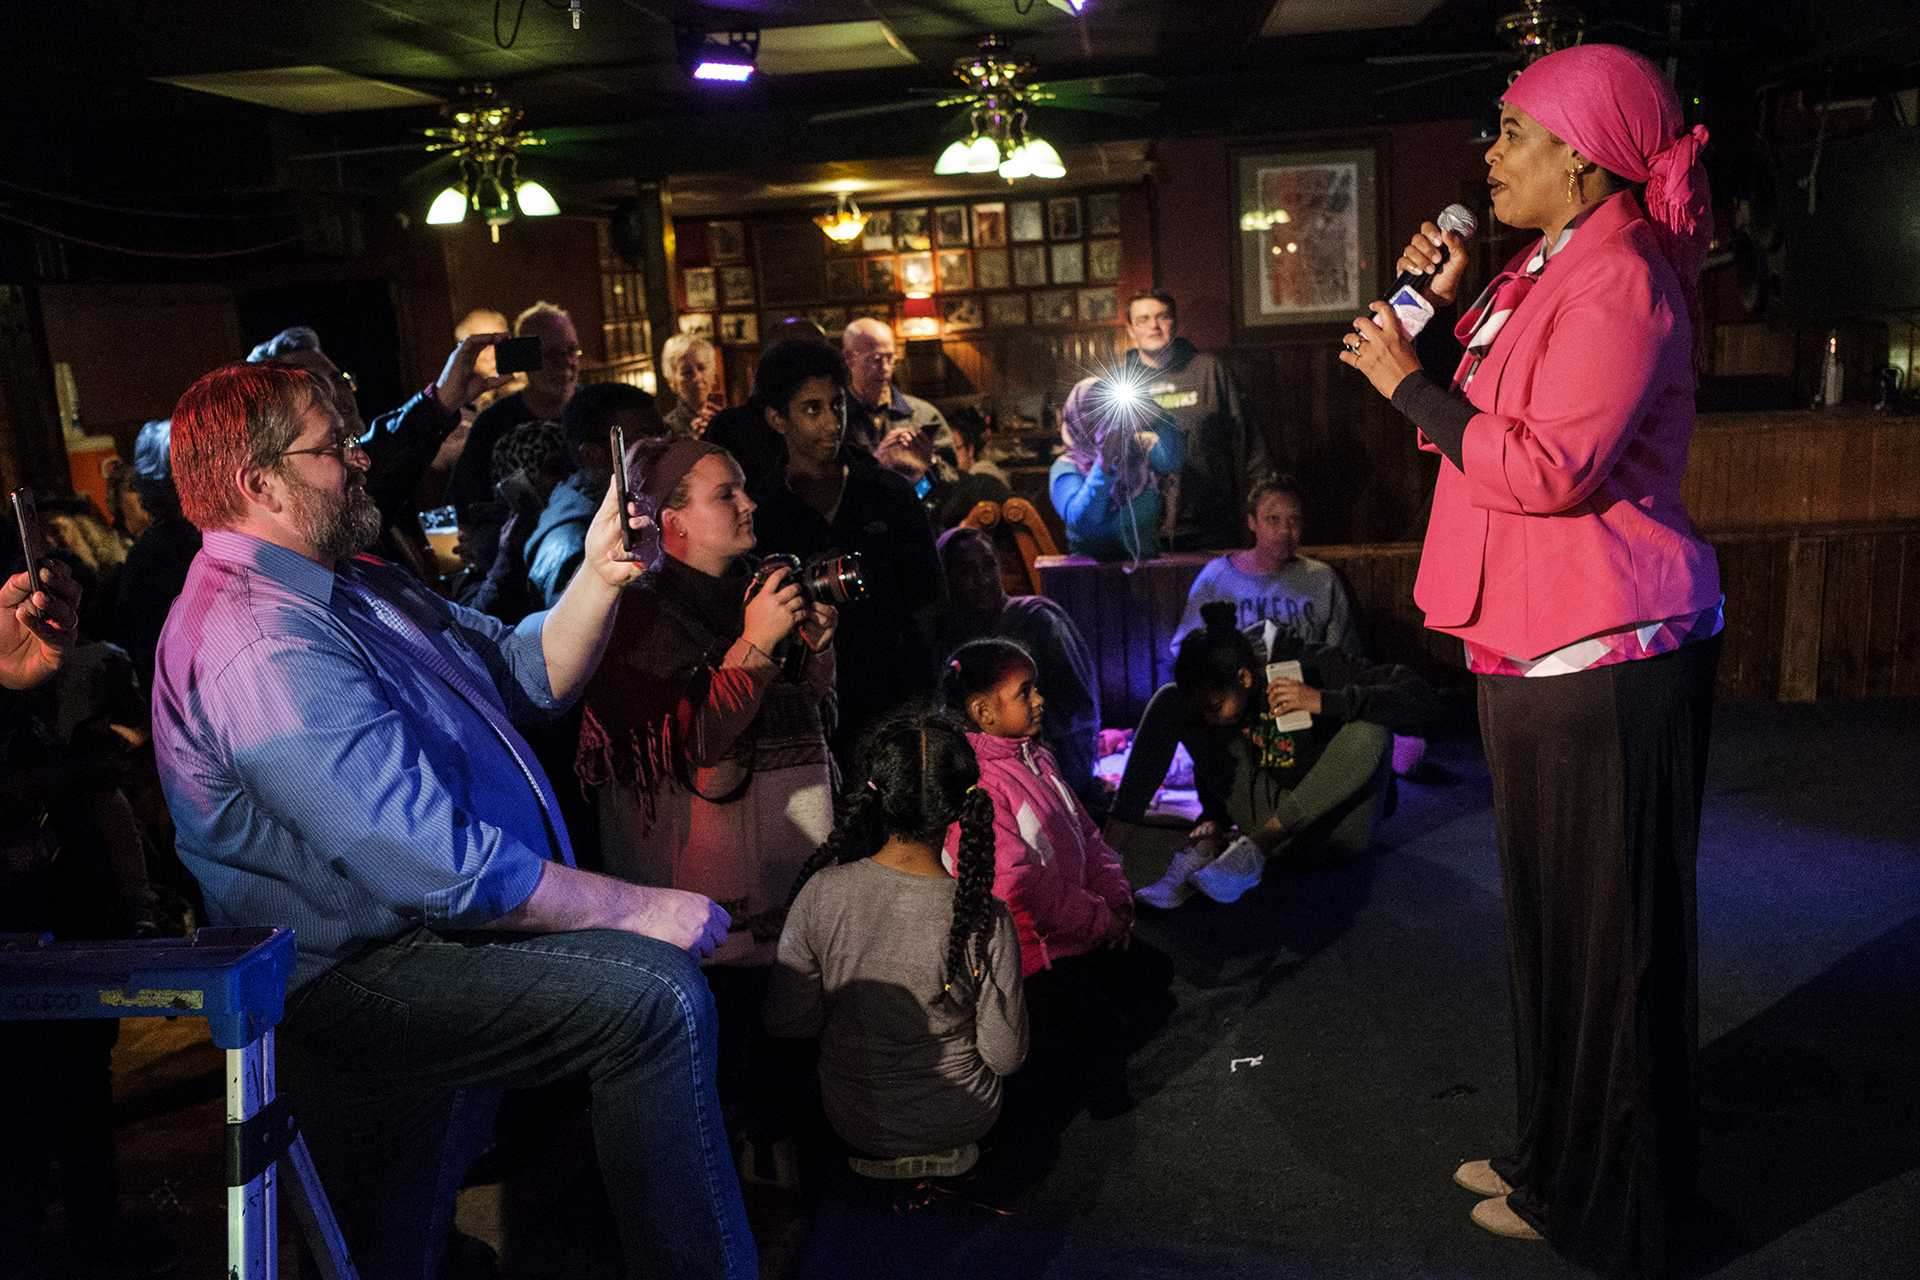 Mazahir Salih addresses suporters after election results were announced at the Mill in Iowa City on Tuesday, Nov. 7, 2017. Salih won an at large seat on the Iowa City city council along with incumbent Kingsley Botchway. (Nick Rohlman/The Daily Iowan)